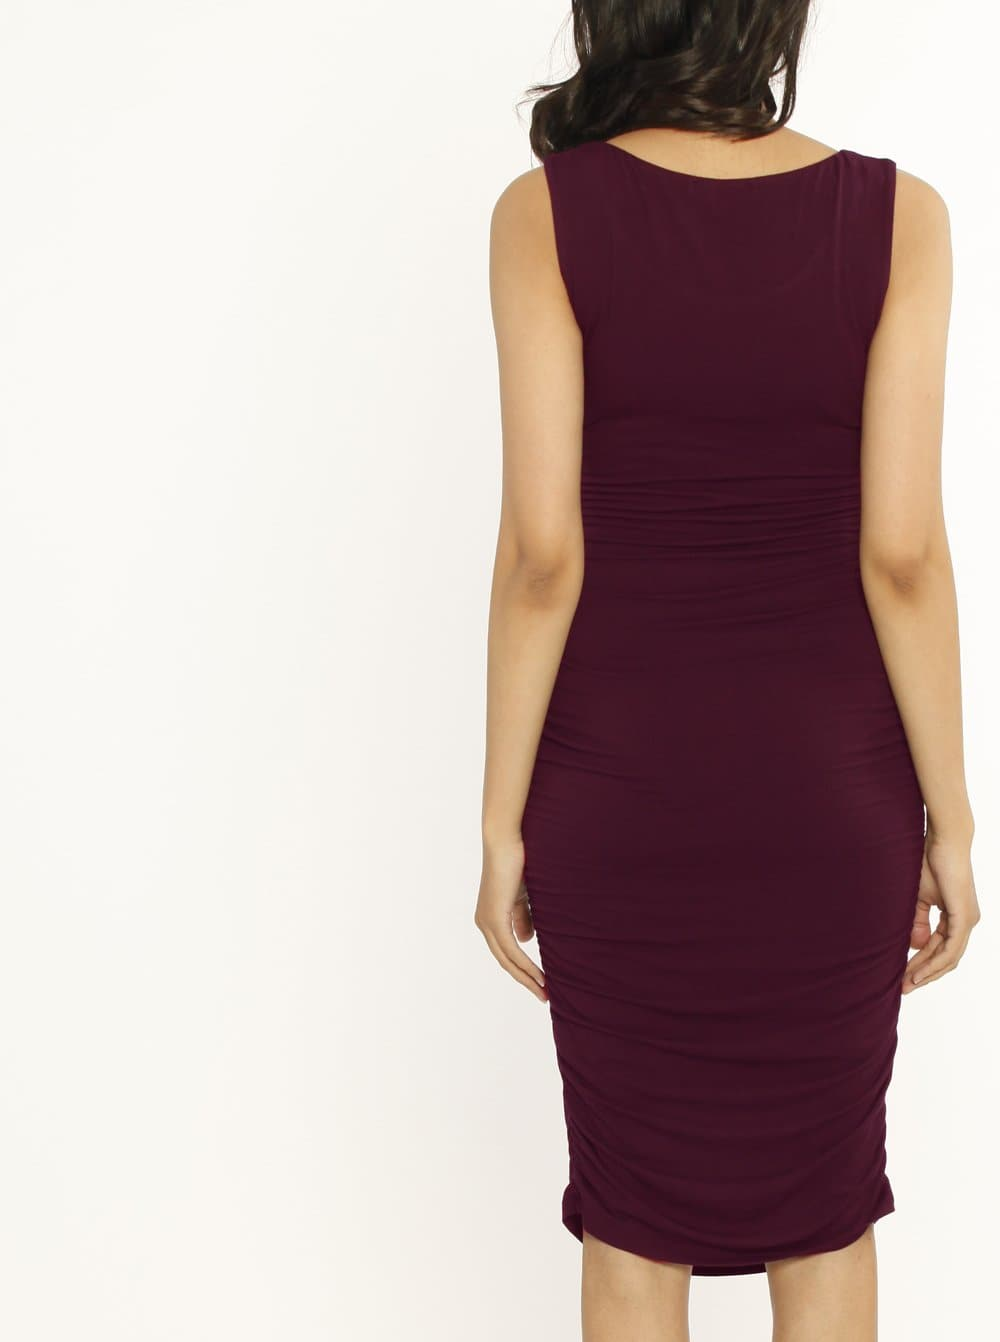 Maternity Summer Bodycon Bamboo Dress - Burgundy maternity online store